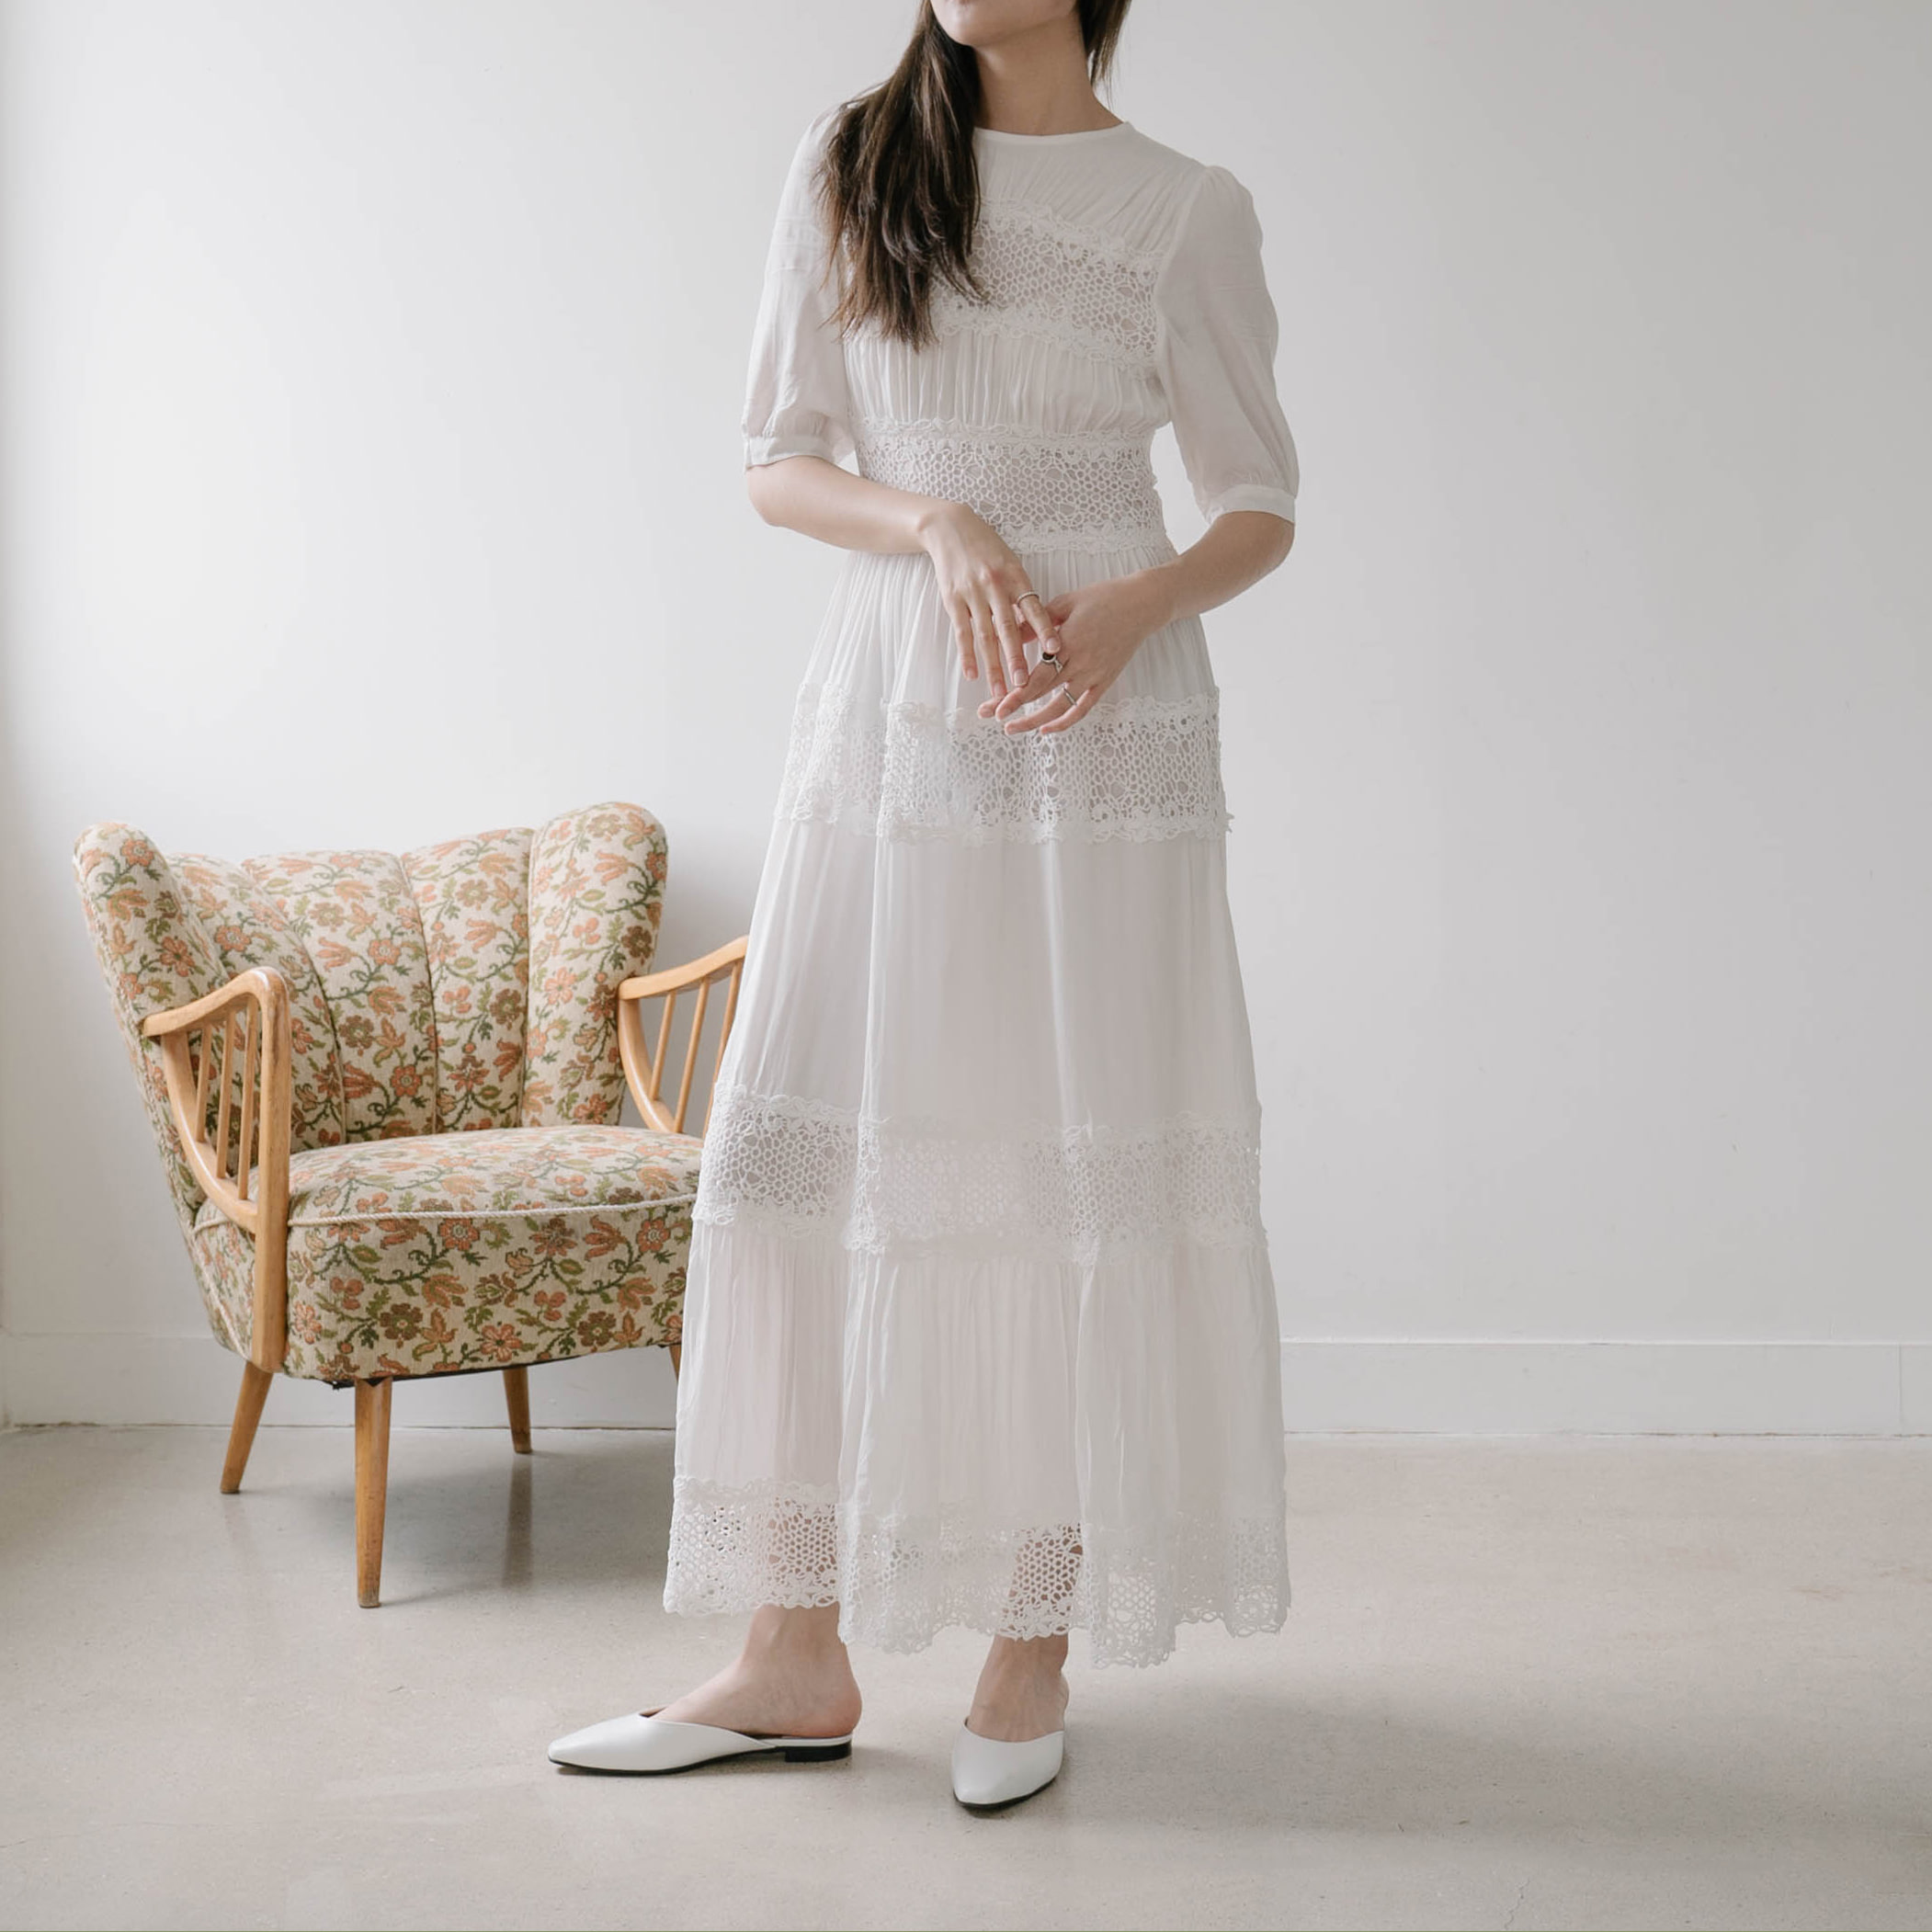 Every Need Want Day Long Dress Korea Free Shipping Renor Classic Mood From